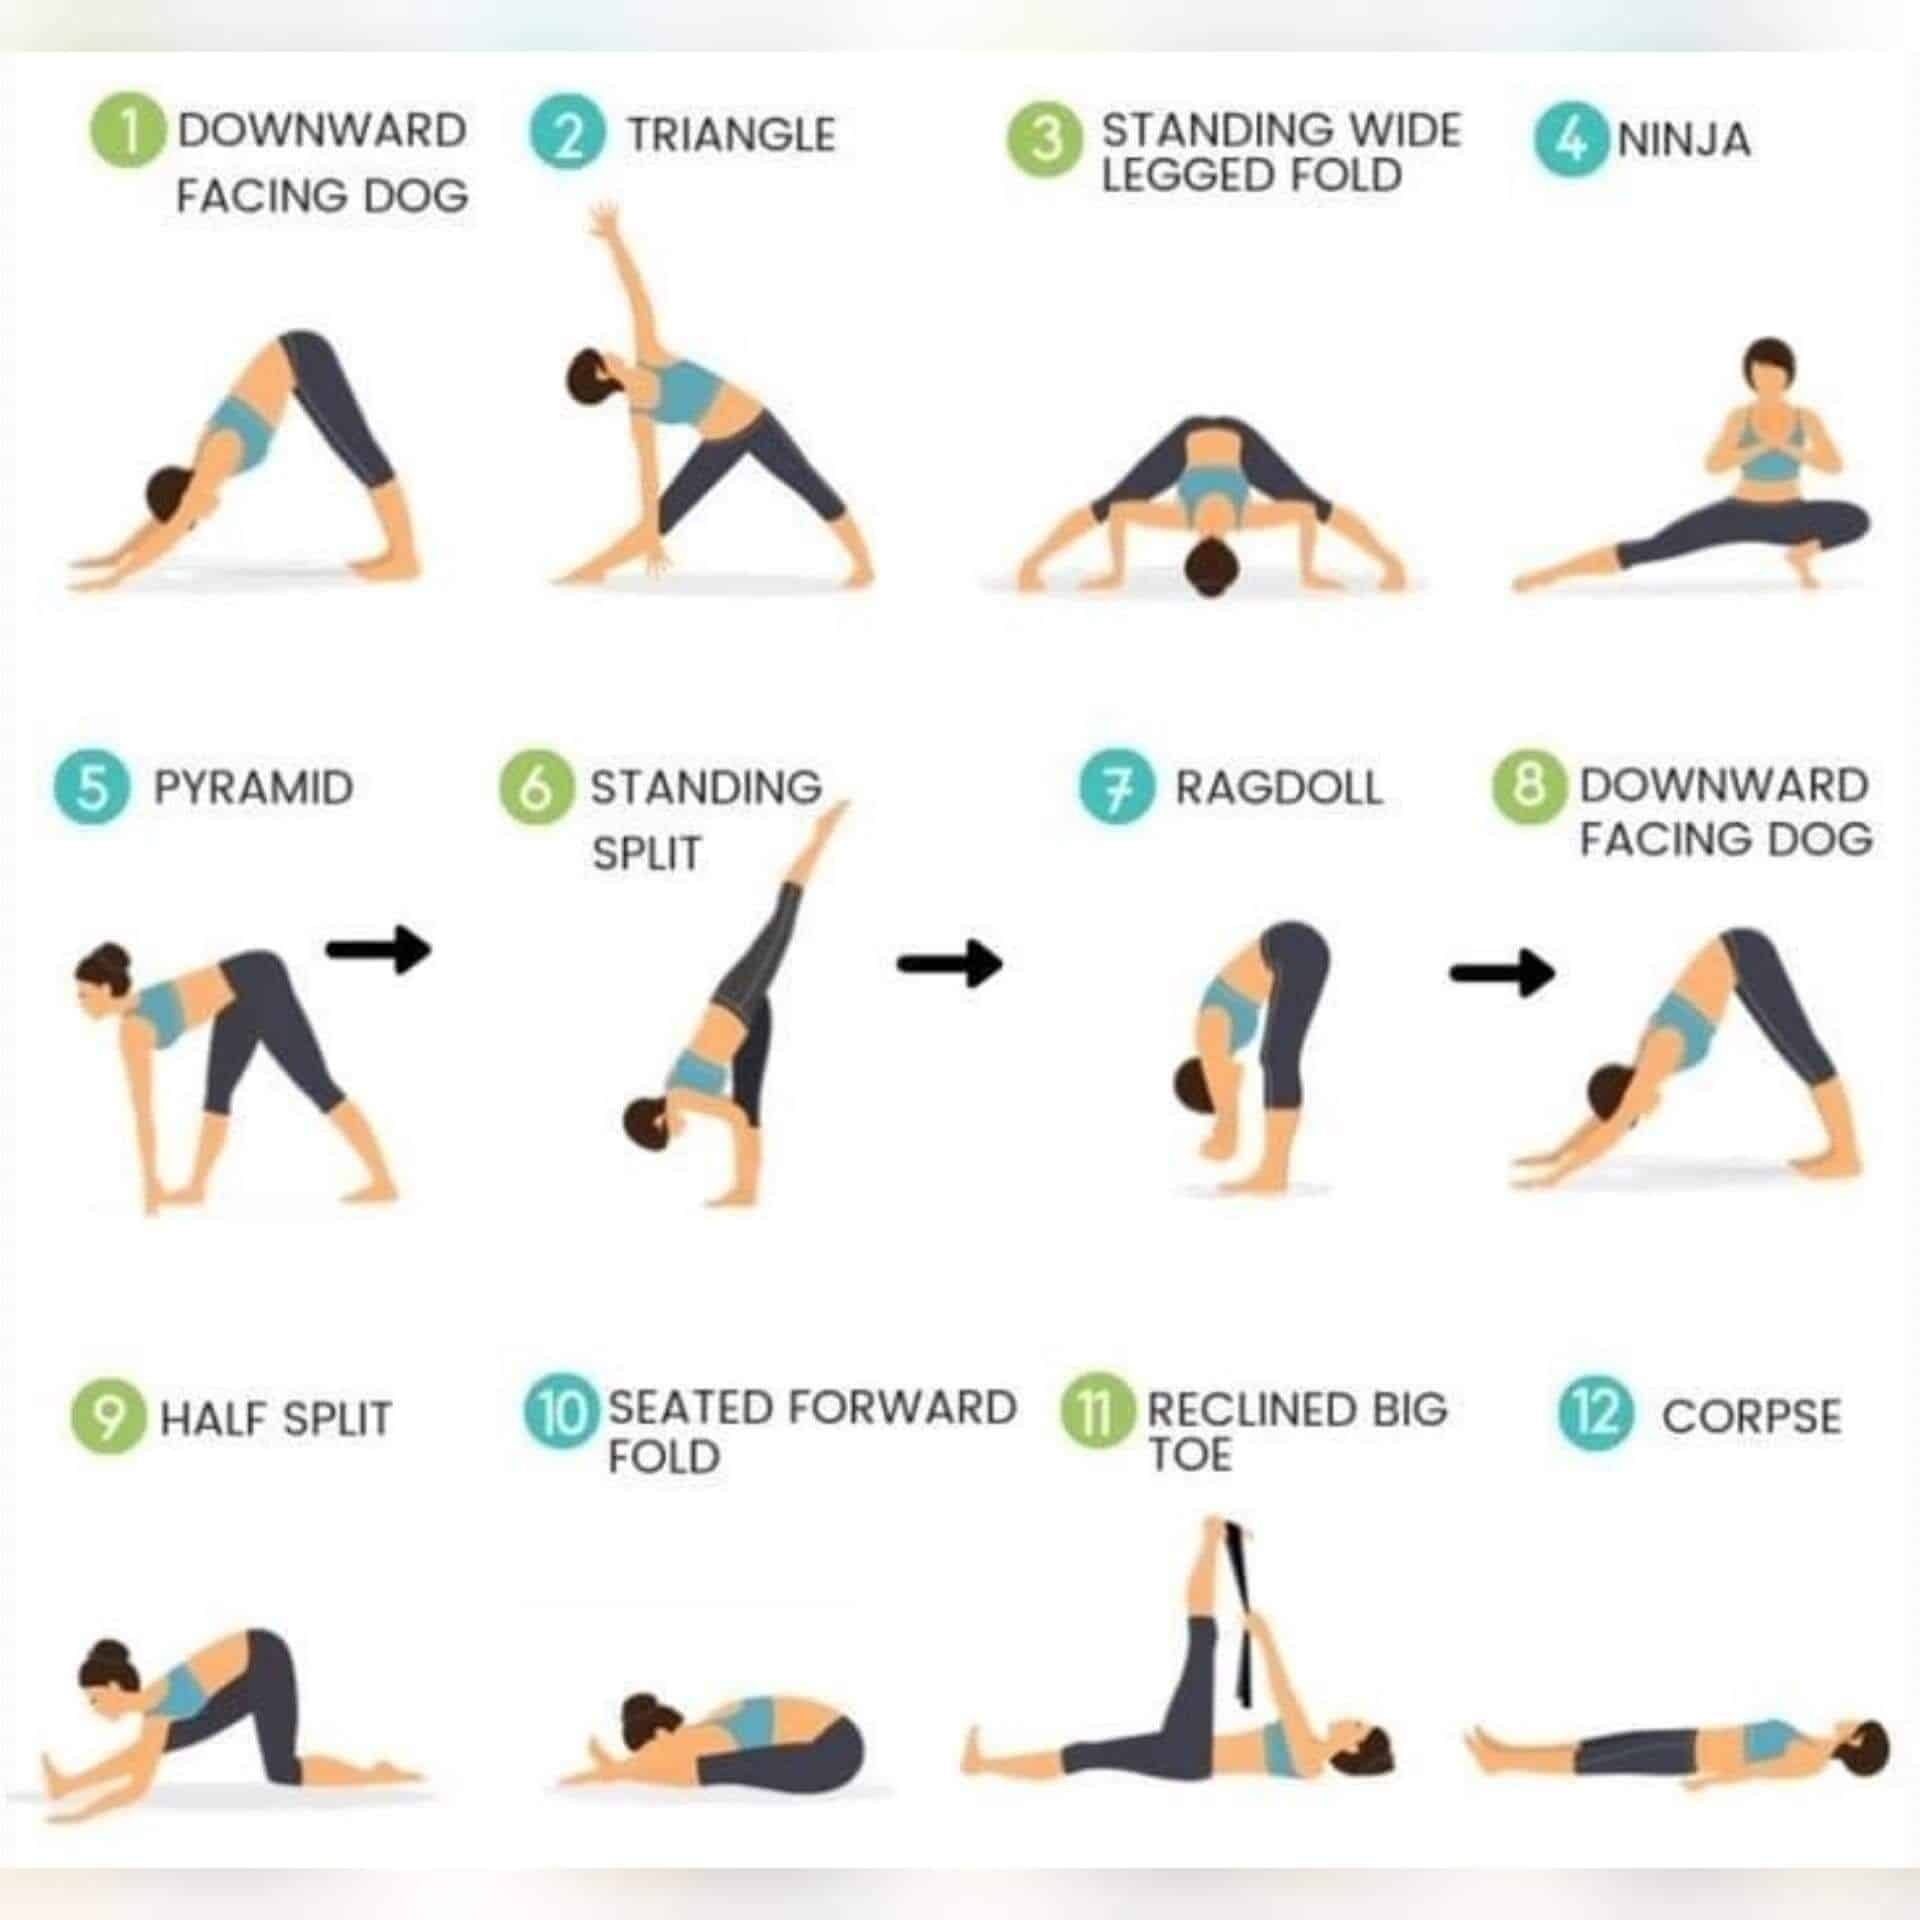 Top 10 exercises or stretches